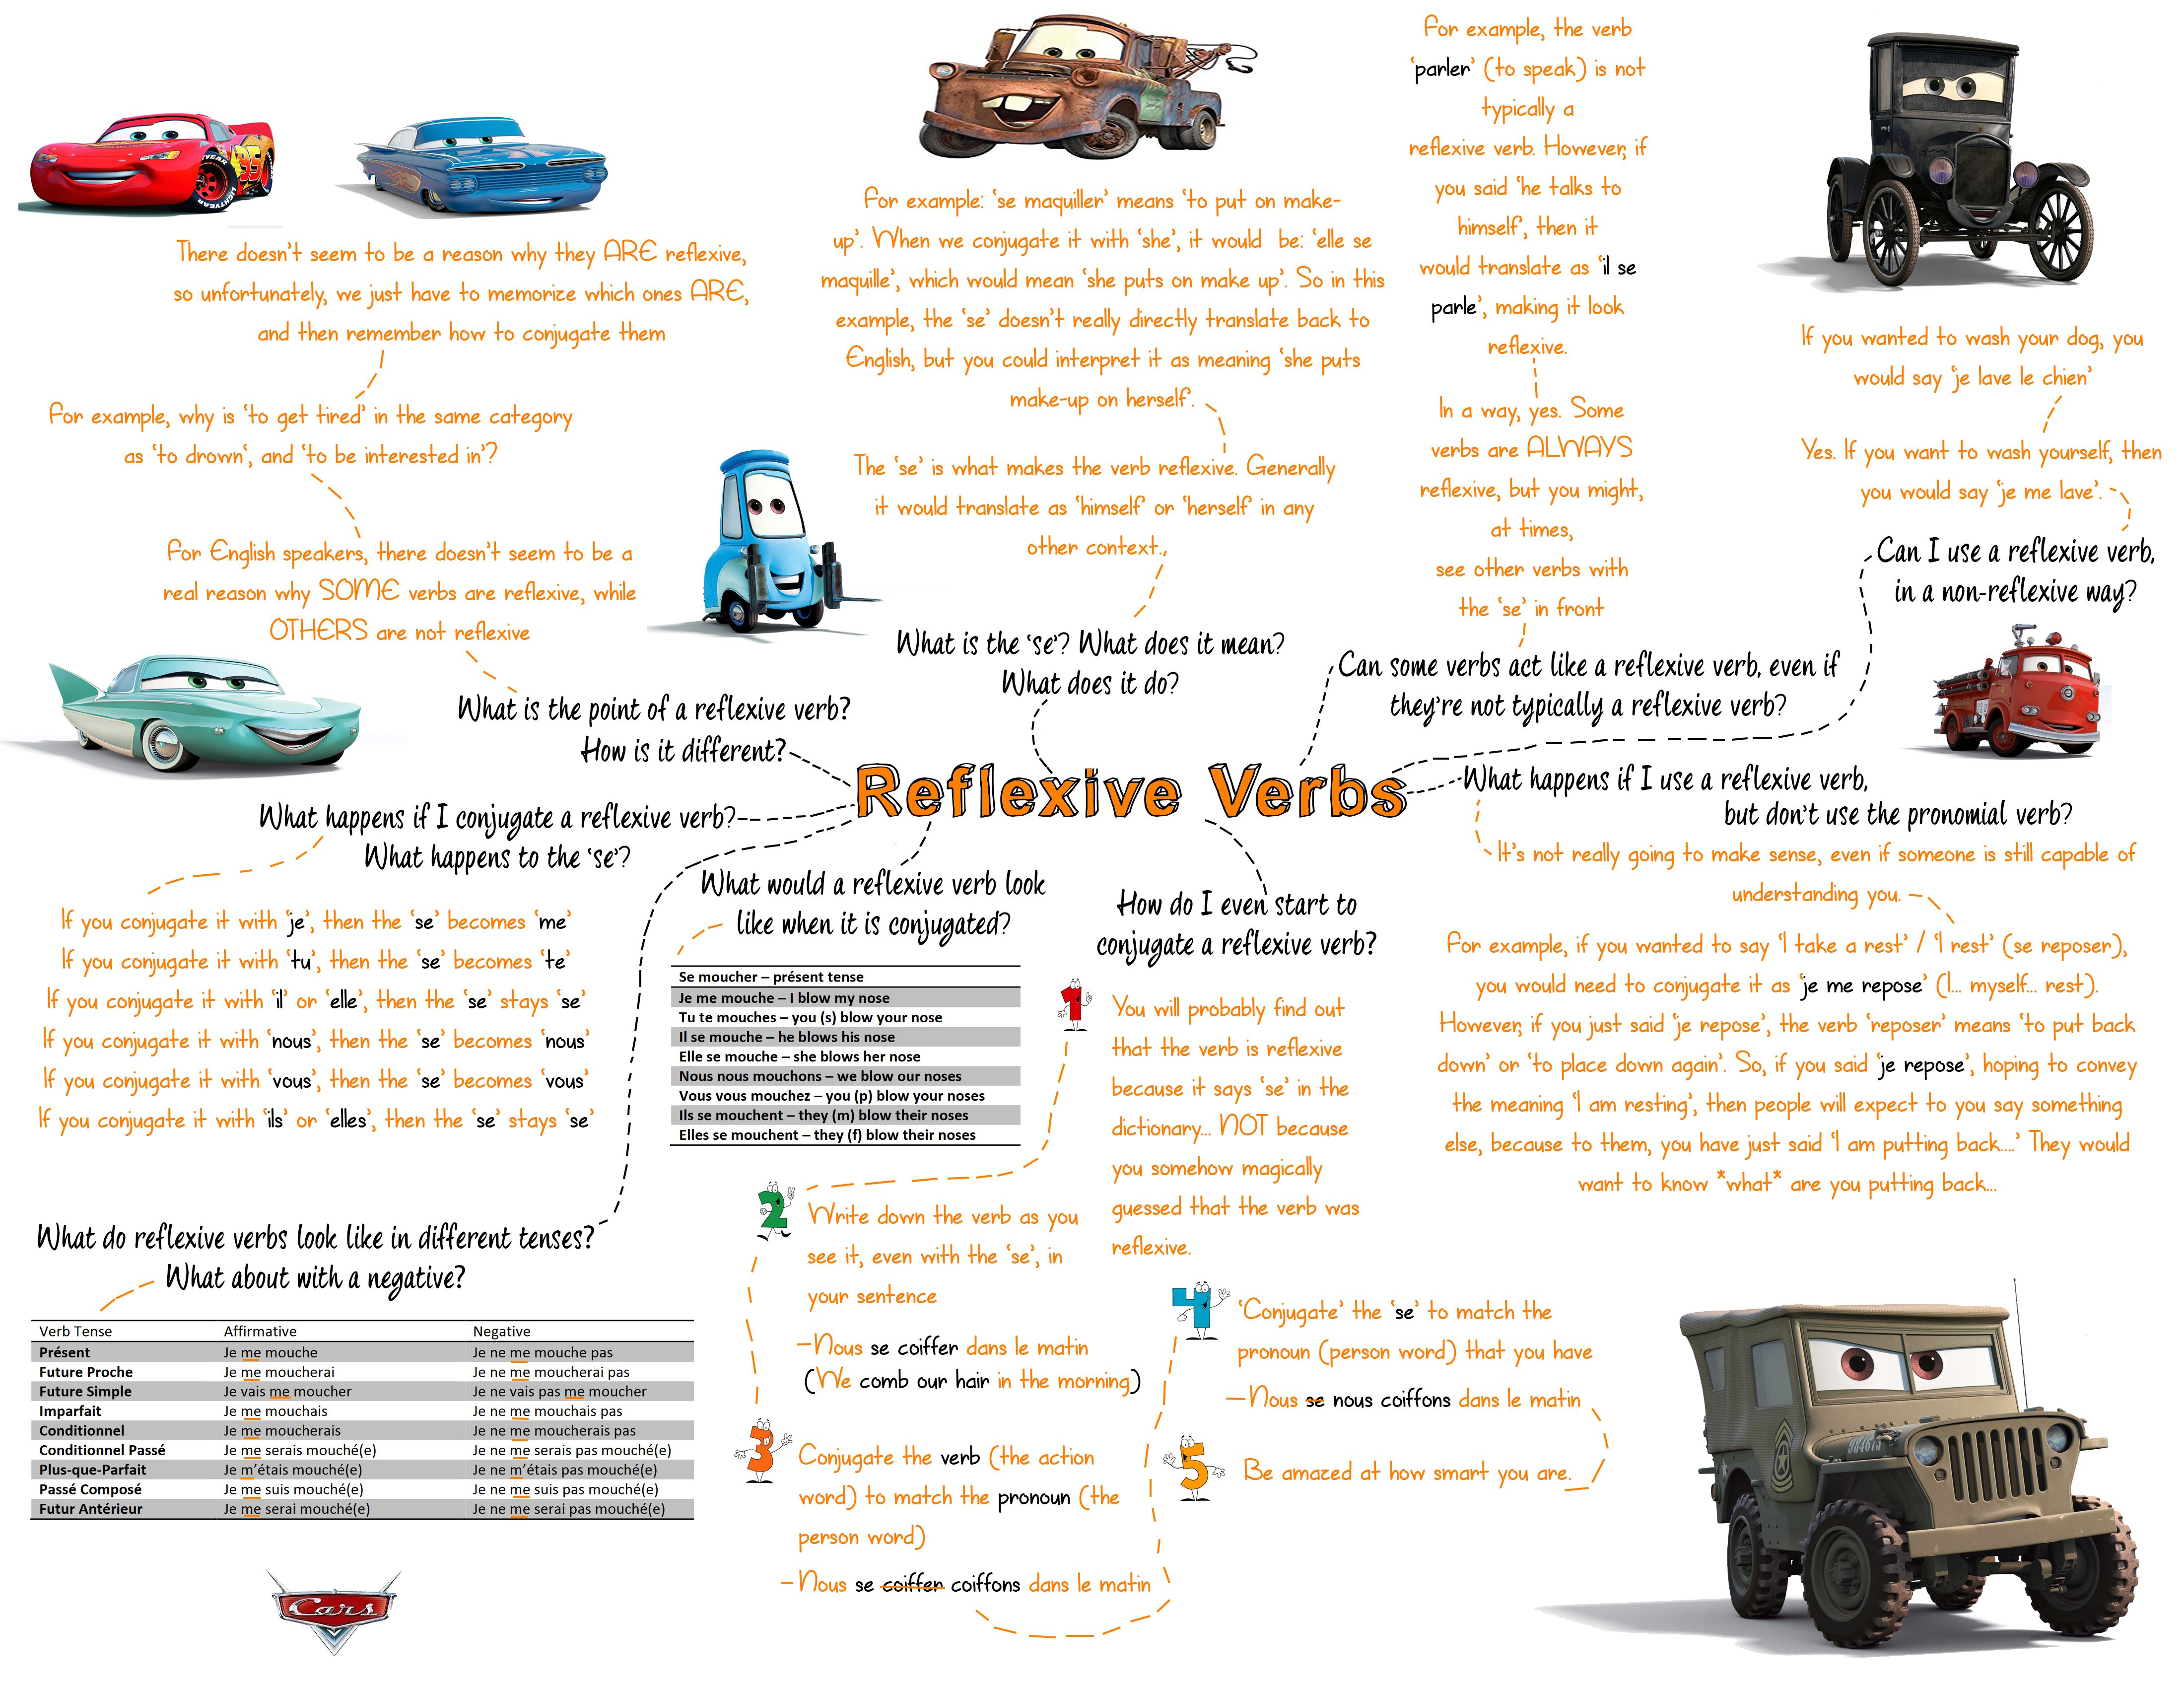 French Reflexive Verbs Mind Map